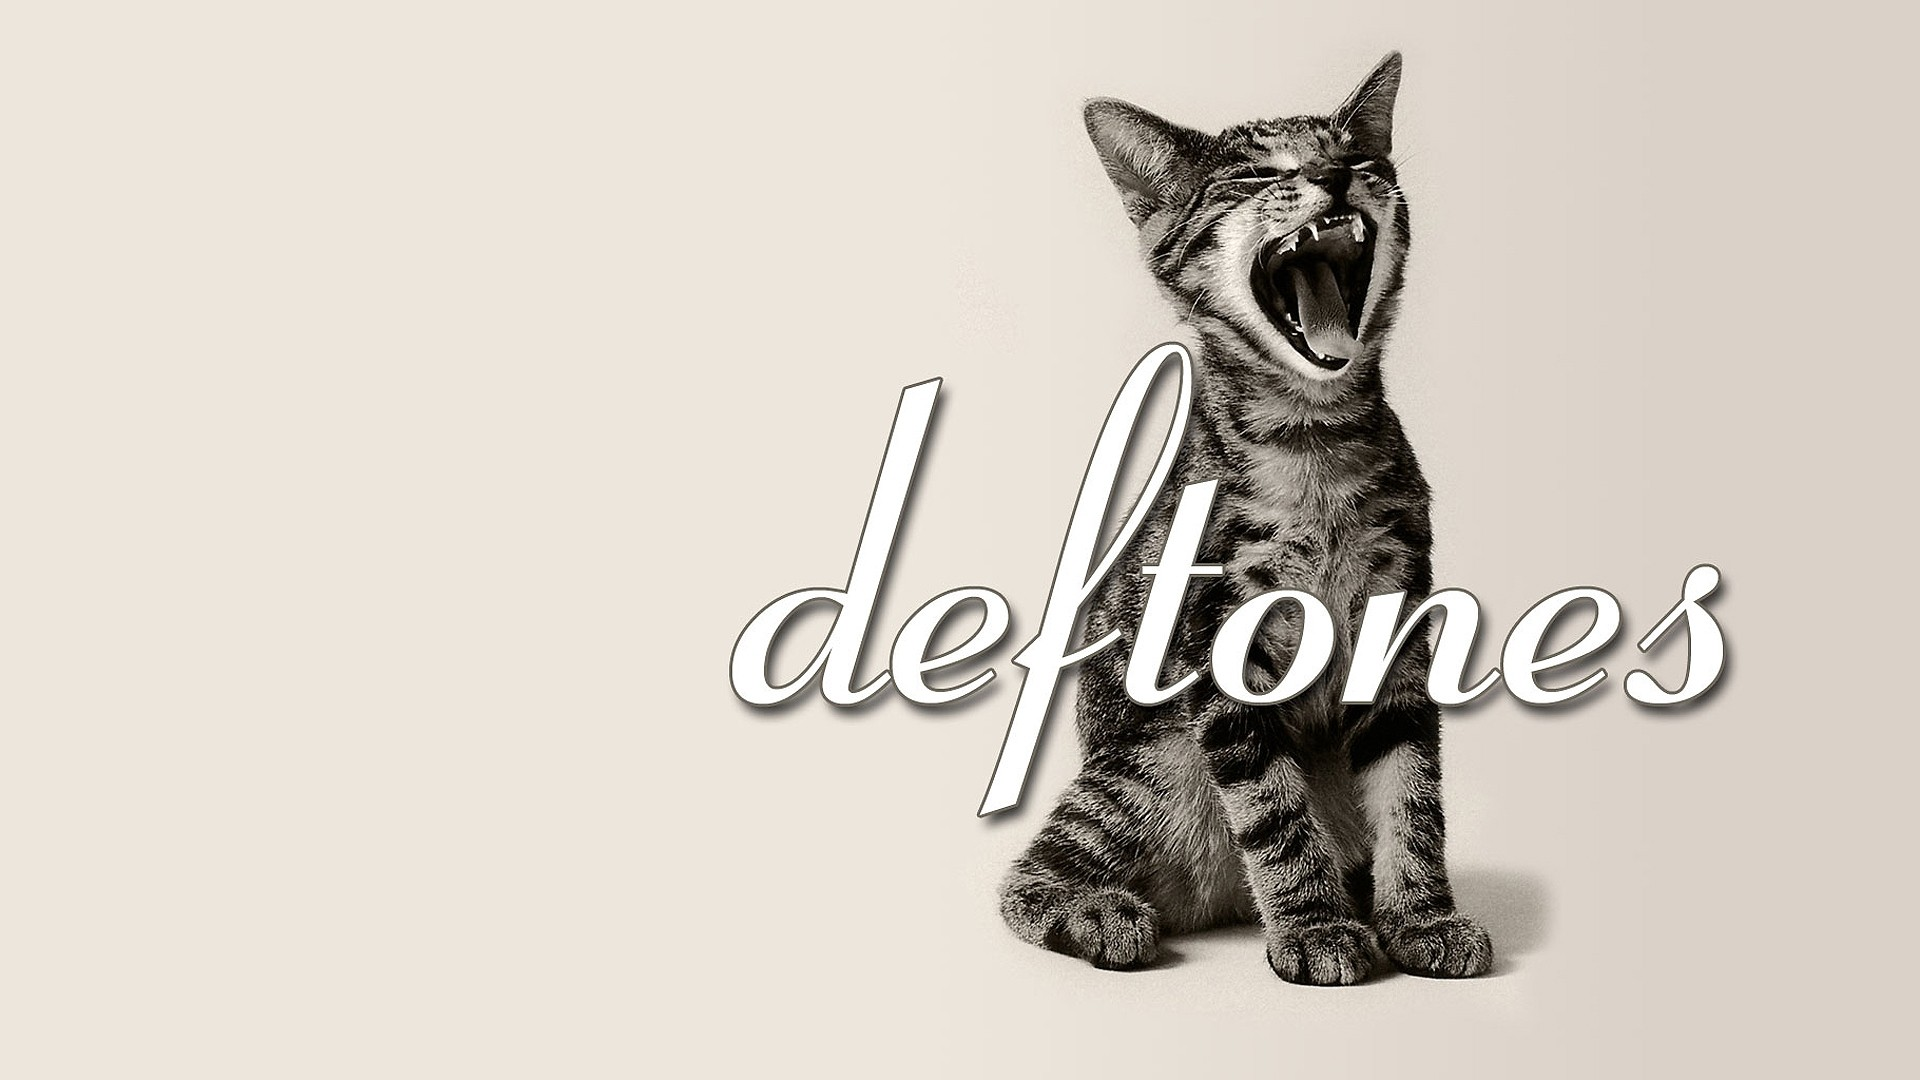 Deftones vertical wallpaper hd